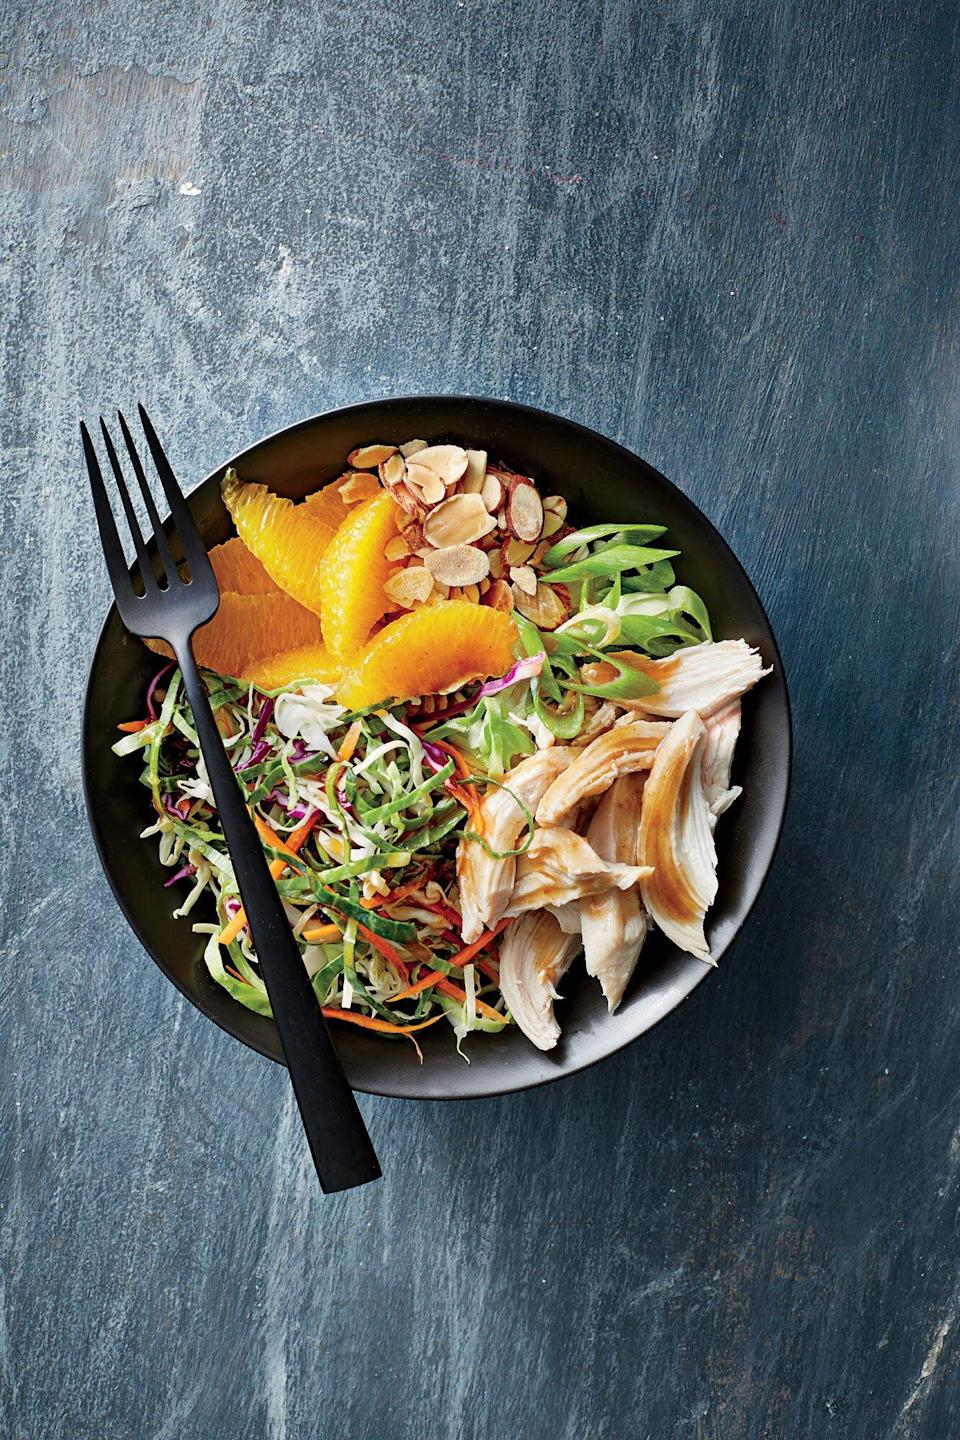 "<p>Make these low-calorie, no-cook bowls ahead for an easy lunch or dinner when time is tight. Change up the fruit, nut, or protein for whatever you have on hand.</p> <p><a href=""https://www.myrecipes.com/recipe/orange-almond-chicken-and-cabbage-bowls"" rel=""nofollow noopener"" target=""_blank"" data-ylk=""slk:Orange-Almond Chicken-and-Cabbage Bowls Recipe"" class=""link rapid-noclick-resp"">Orange-Almond Chicken-and-Cabbage Bowls Recipe</a></p>"